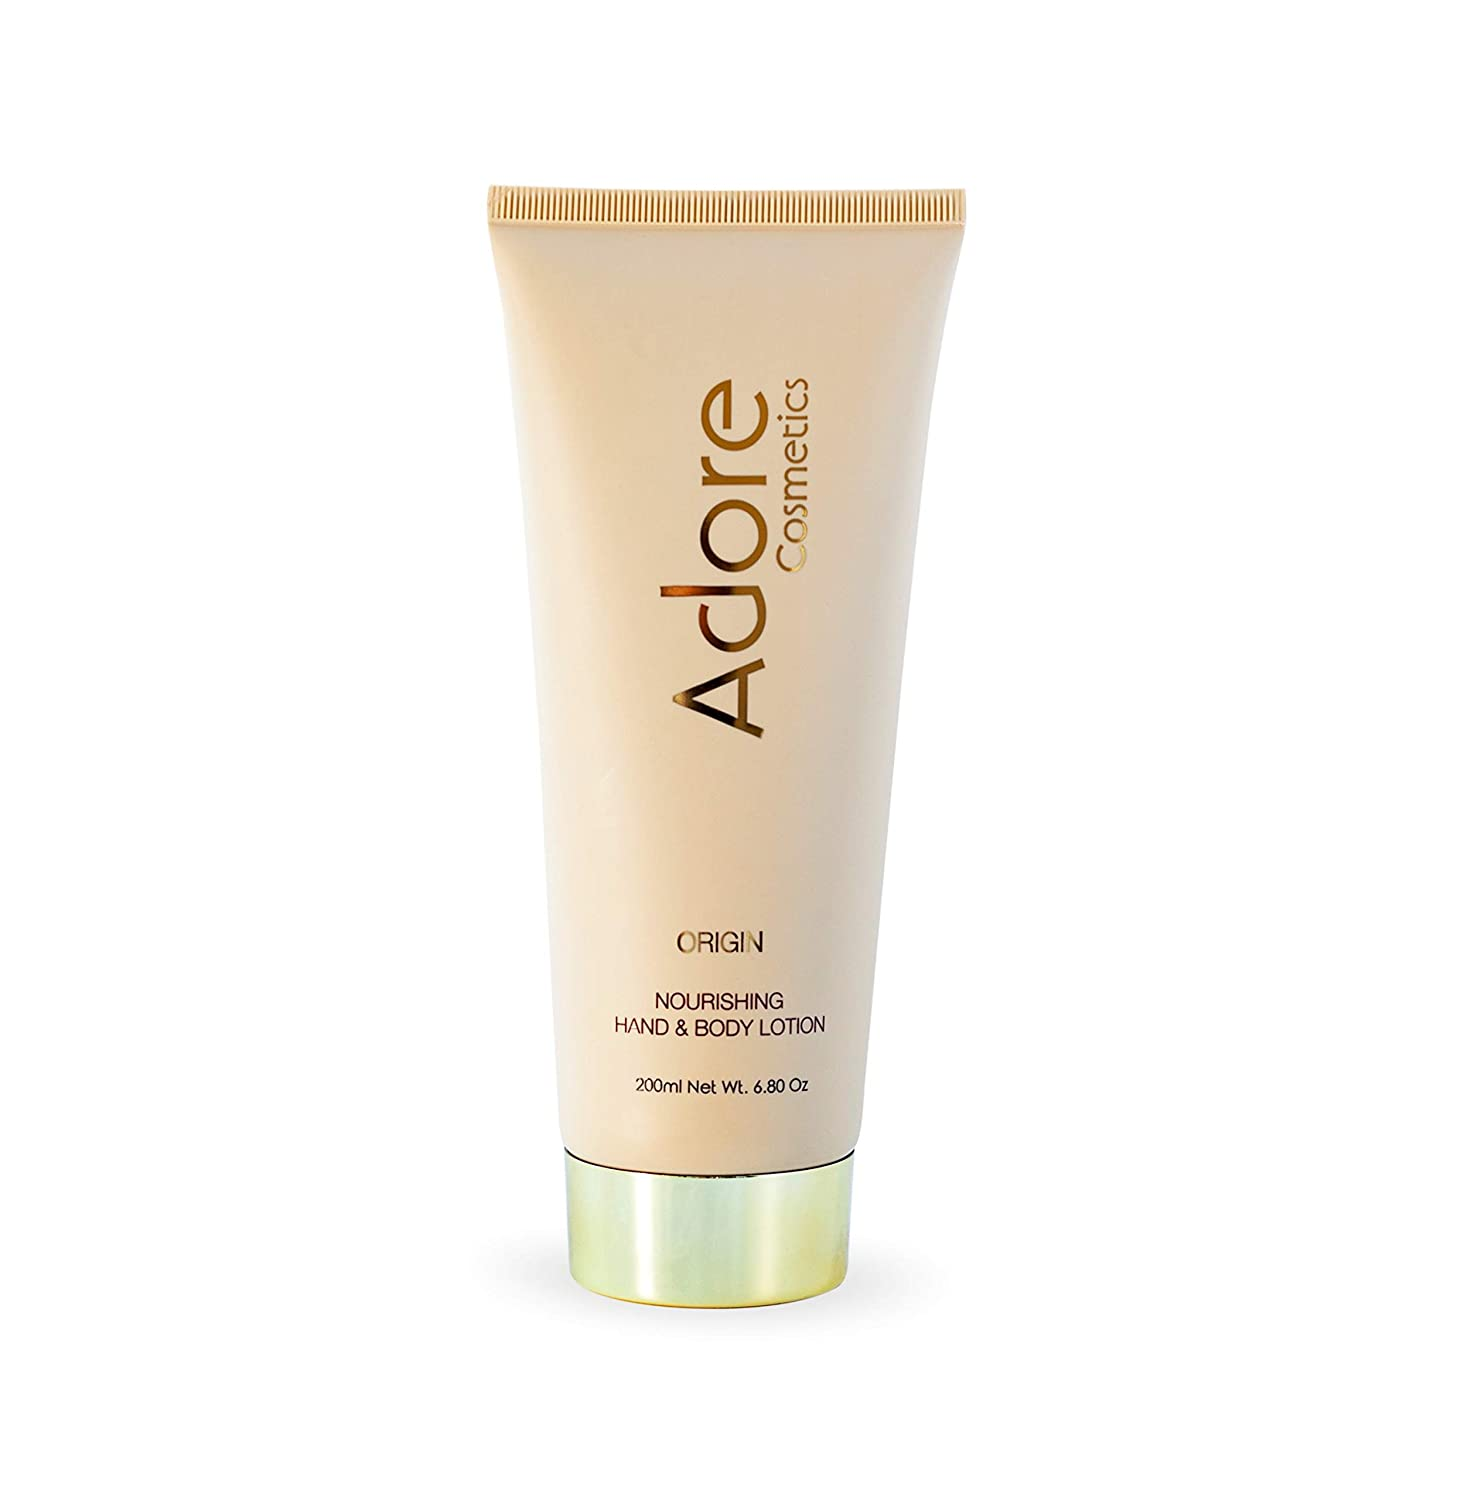 Adore Cosmetics   Nourishing Hand & Body Lotion - Origin - 6.8 Fl Oz   Anti Aging Luxury Lotion For Men and Women   With Shea Butter and Organic Plant Stem Cells For Skin Rejuvenation (1)